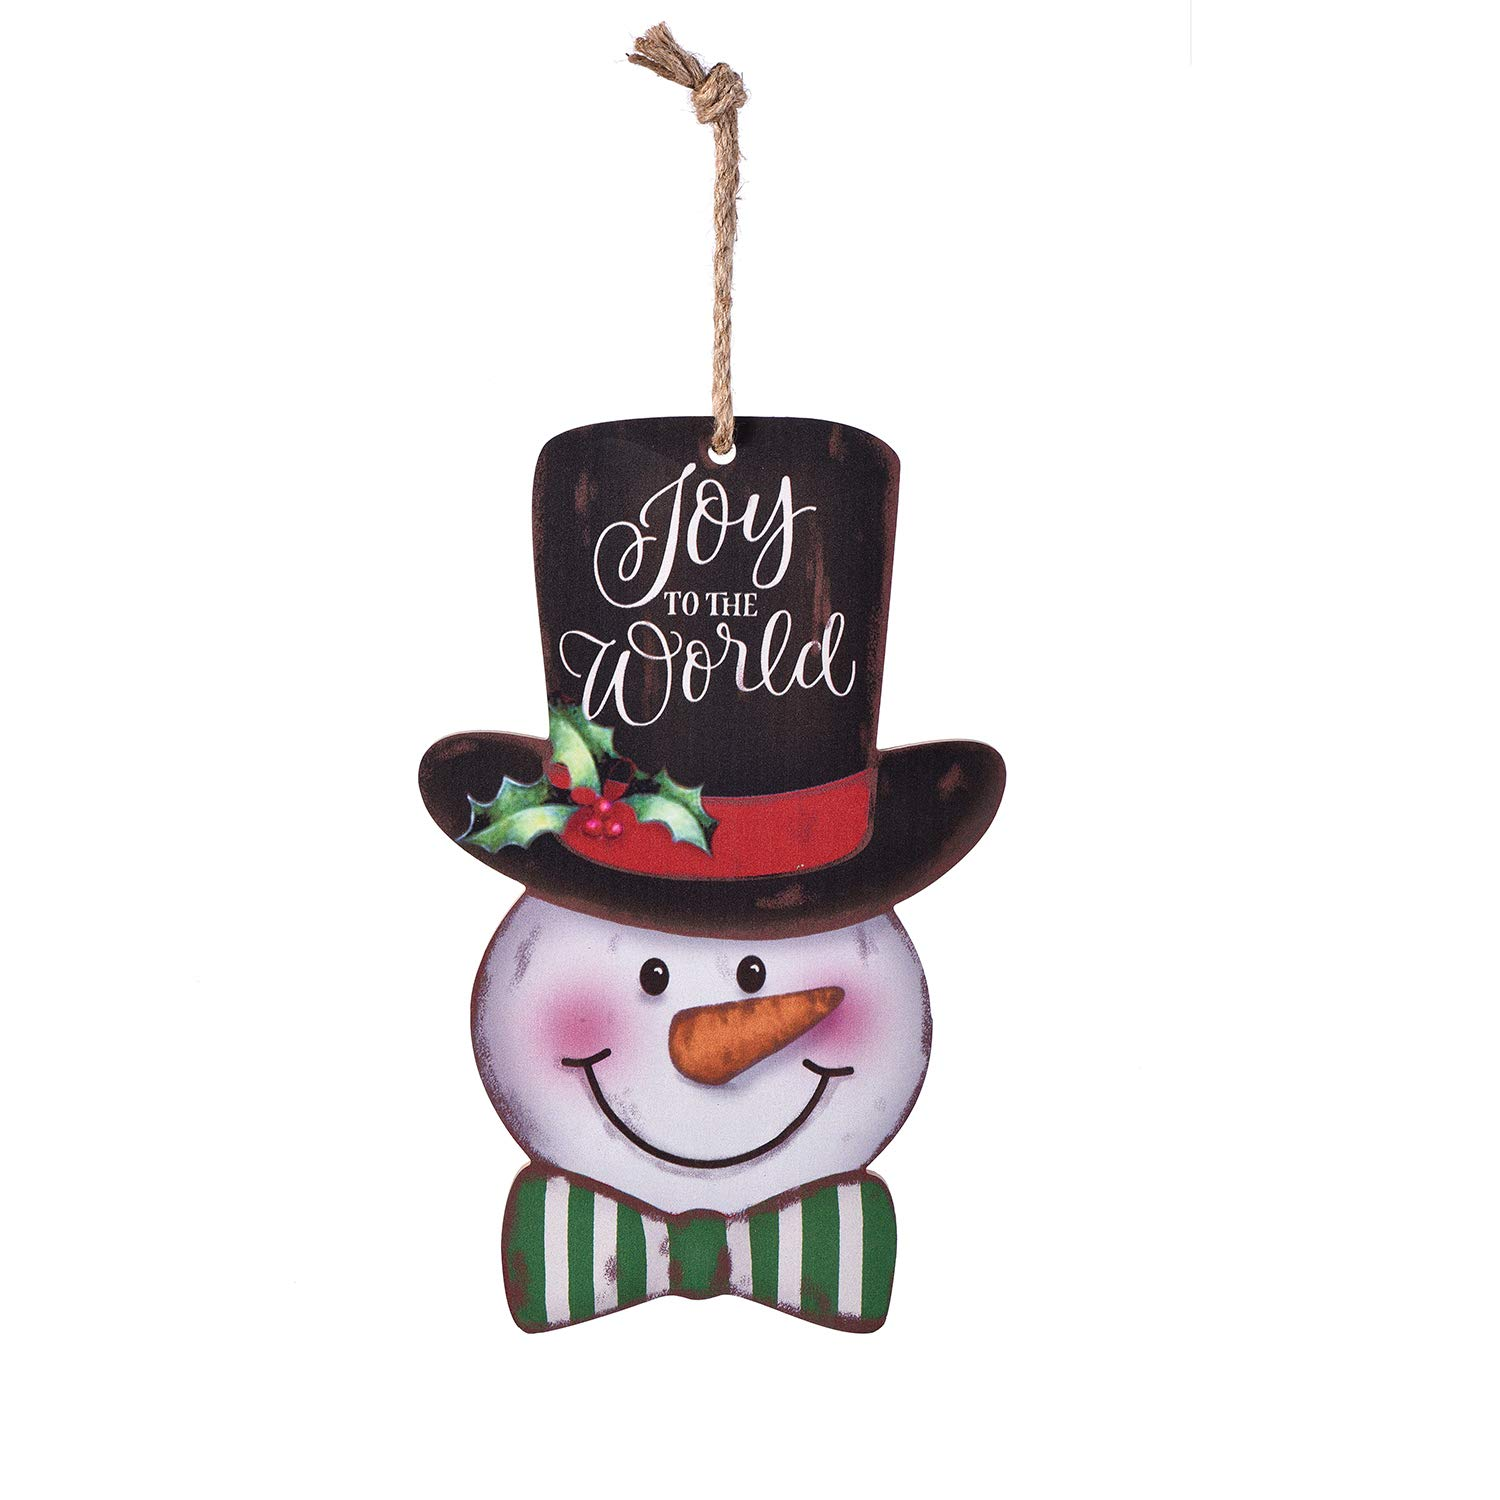 MAIYUAN Snowman Door Wall Plaque Sign Christmas Holiday New Year Hanging Decoration Indoor Outdoor Wood Sign Home Decor (Joy to The World)